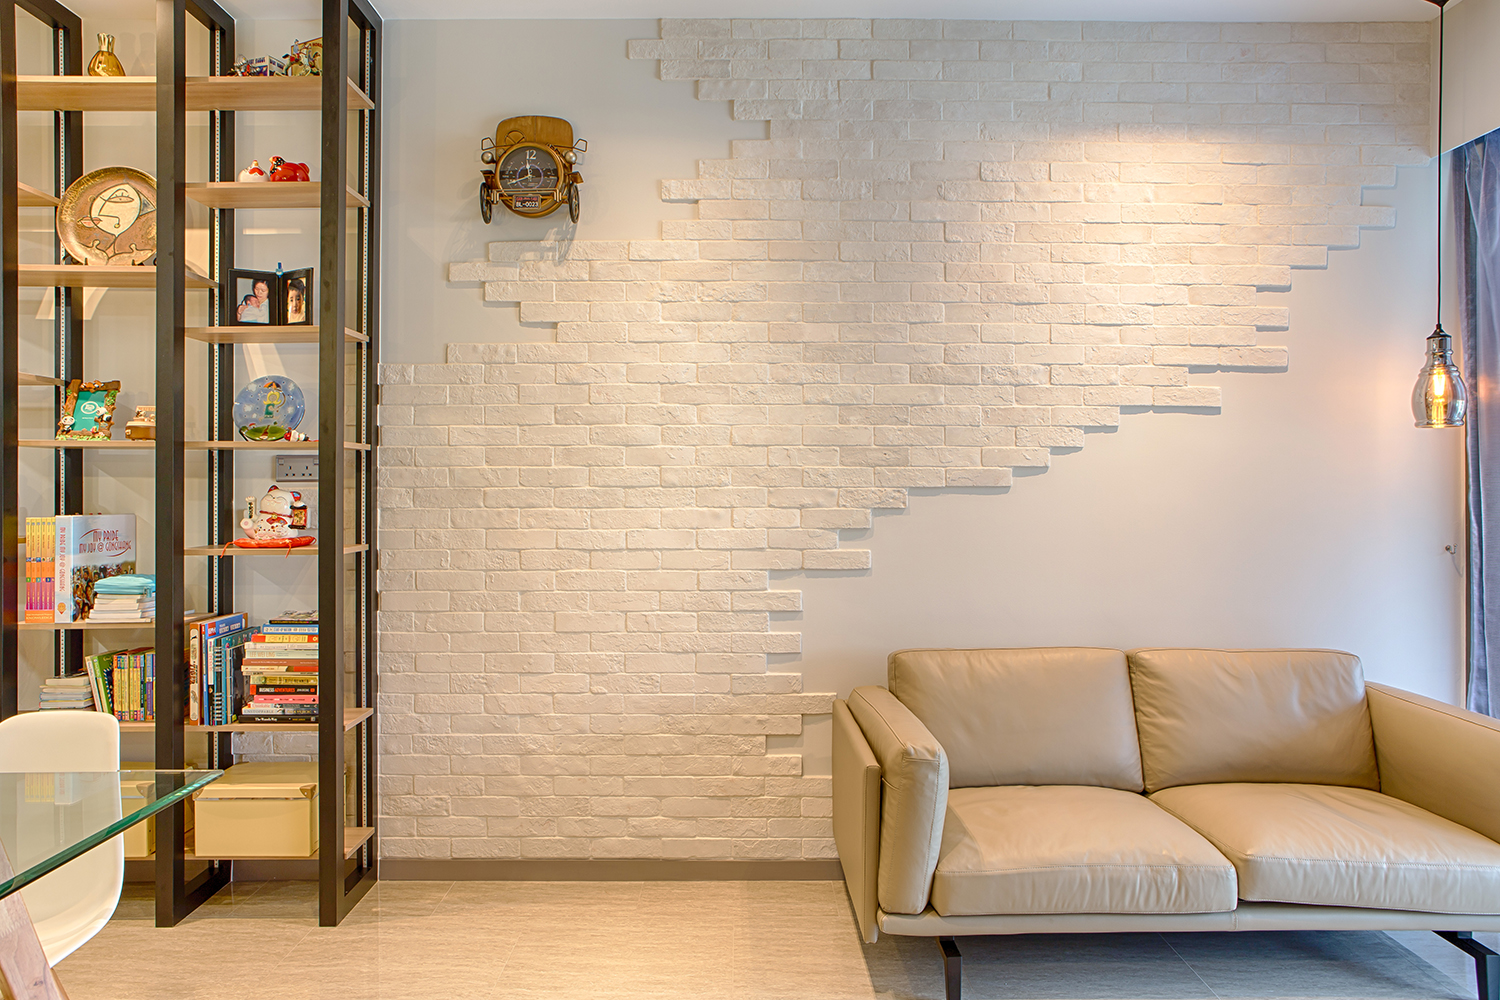 squarerooms-idid-interior-design-white-cream-wall-bricks-couch-living-room-bright-singapore-home